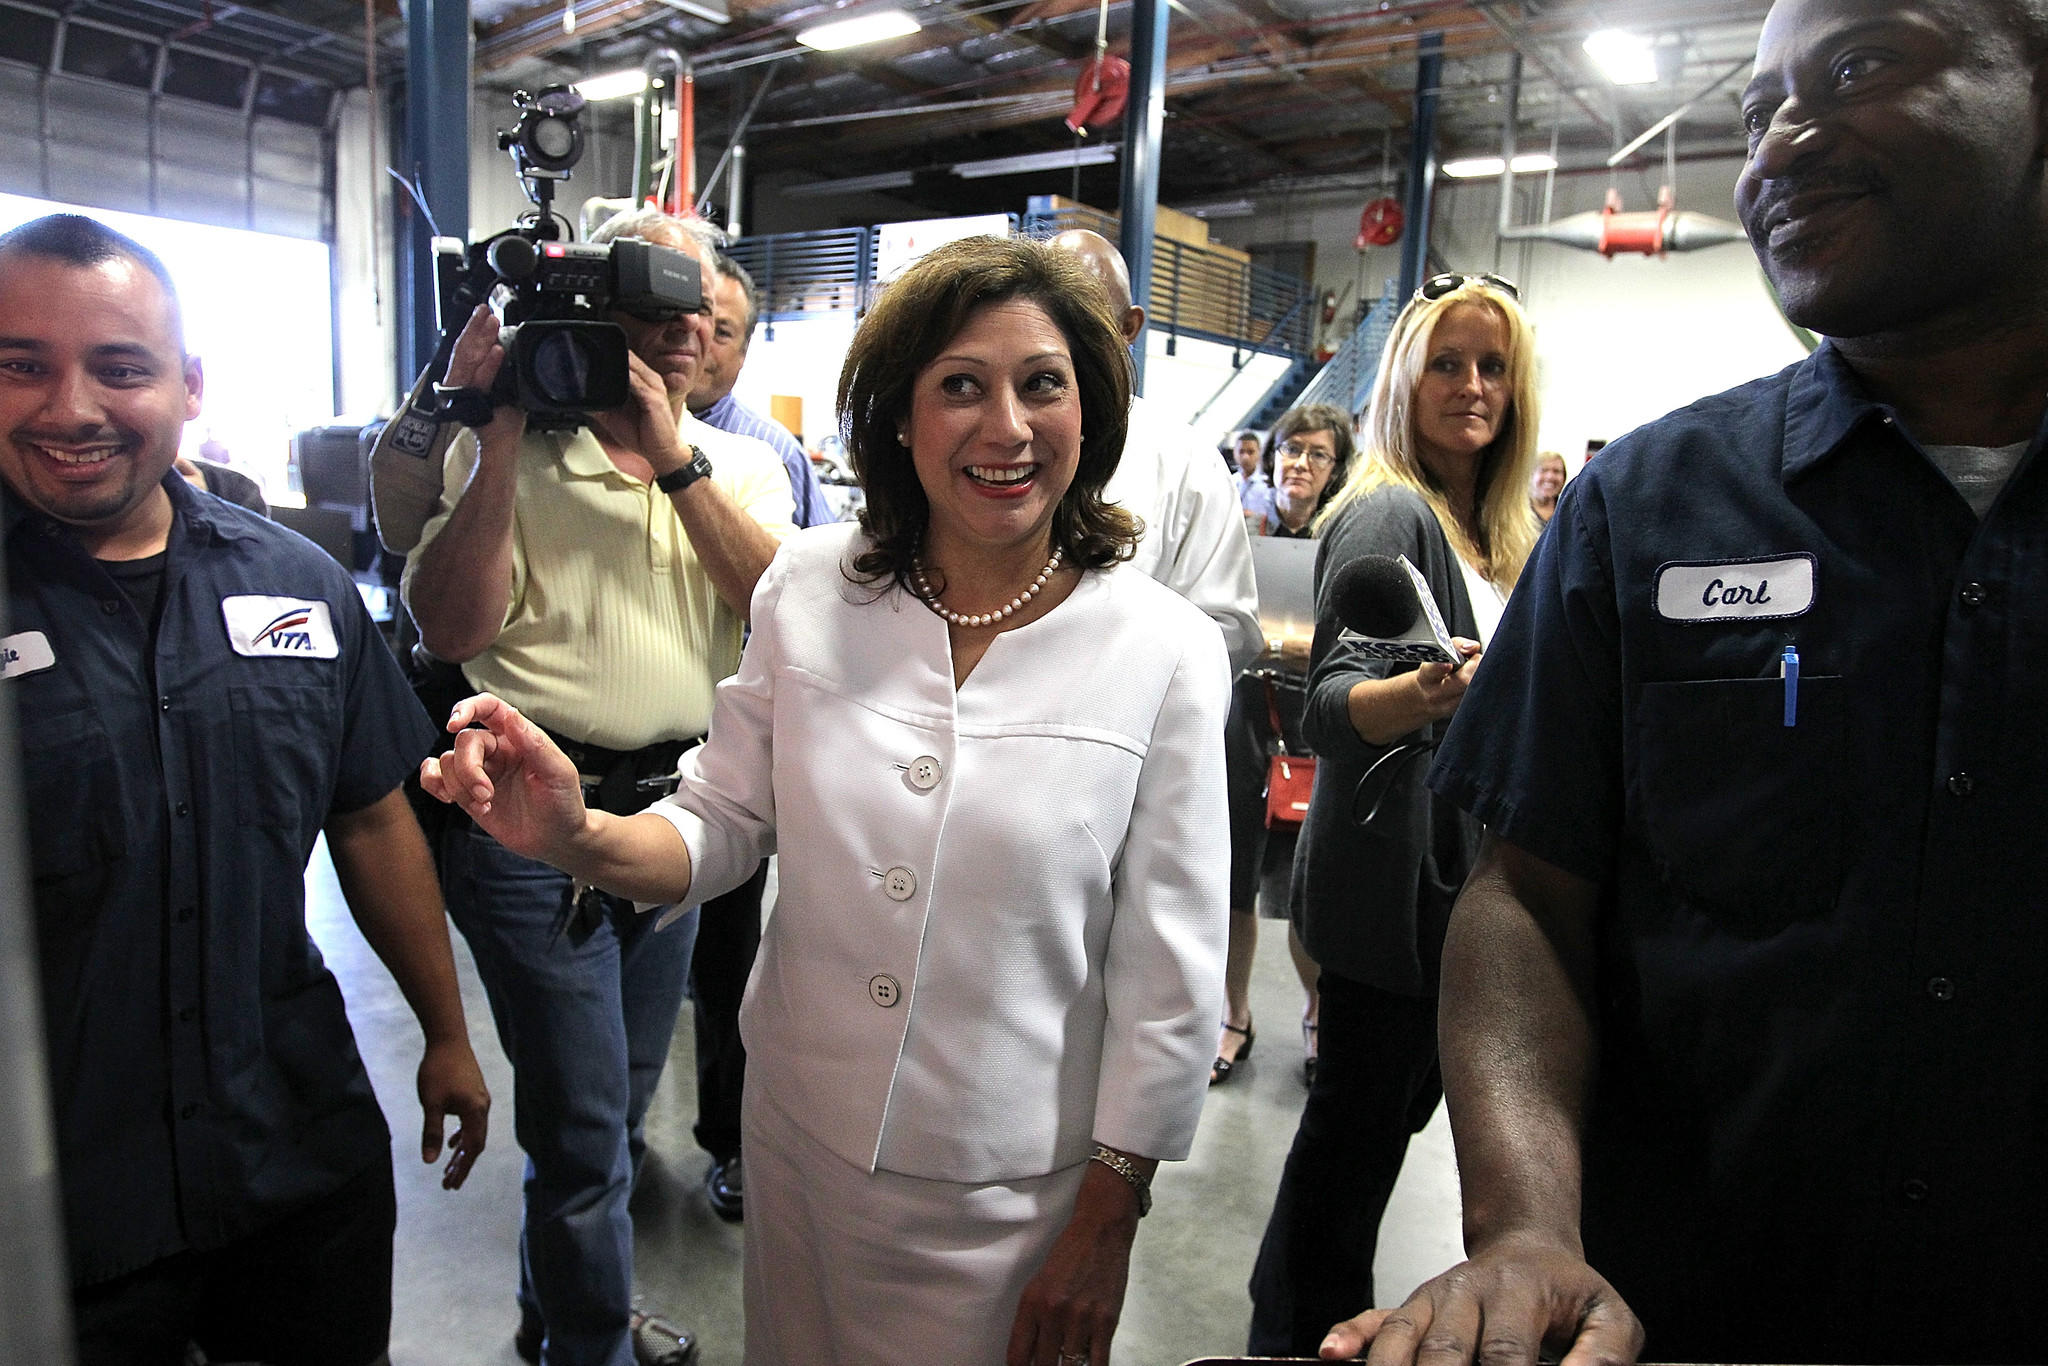 Then-U.S. Secretary of Labor Hilda Solis jokes with students in the Santa Clara Valley Transportation Authority hybrid technology training program in 2011.